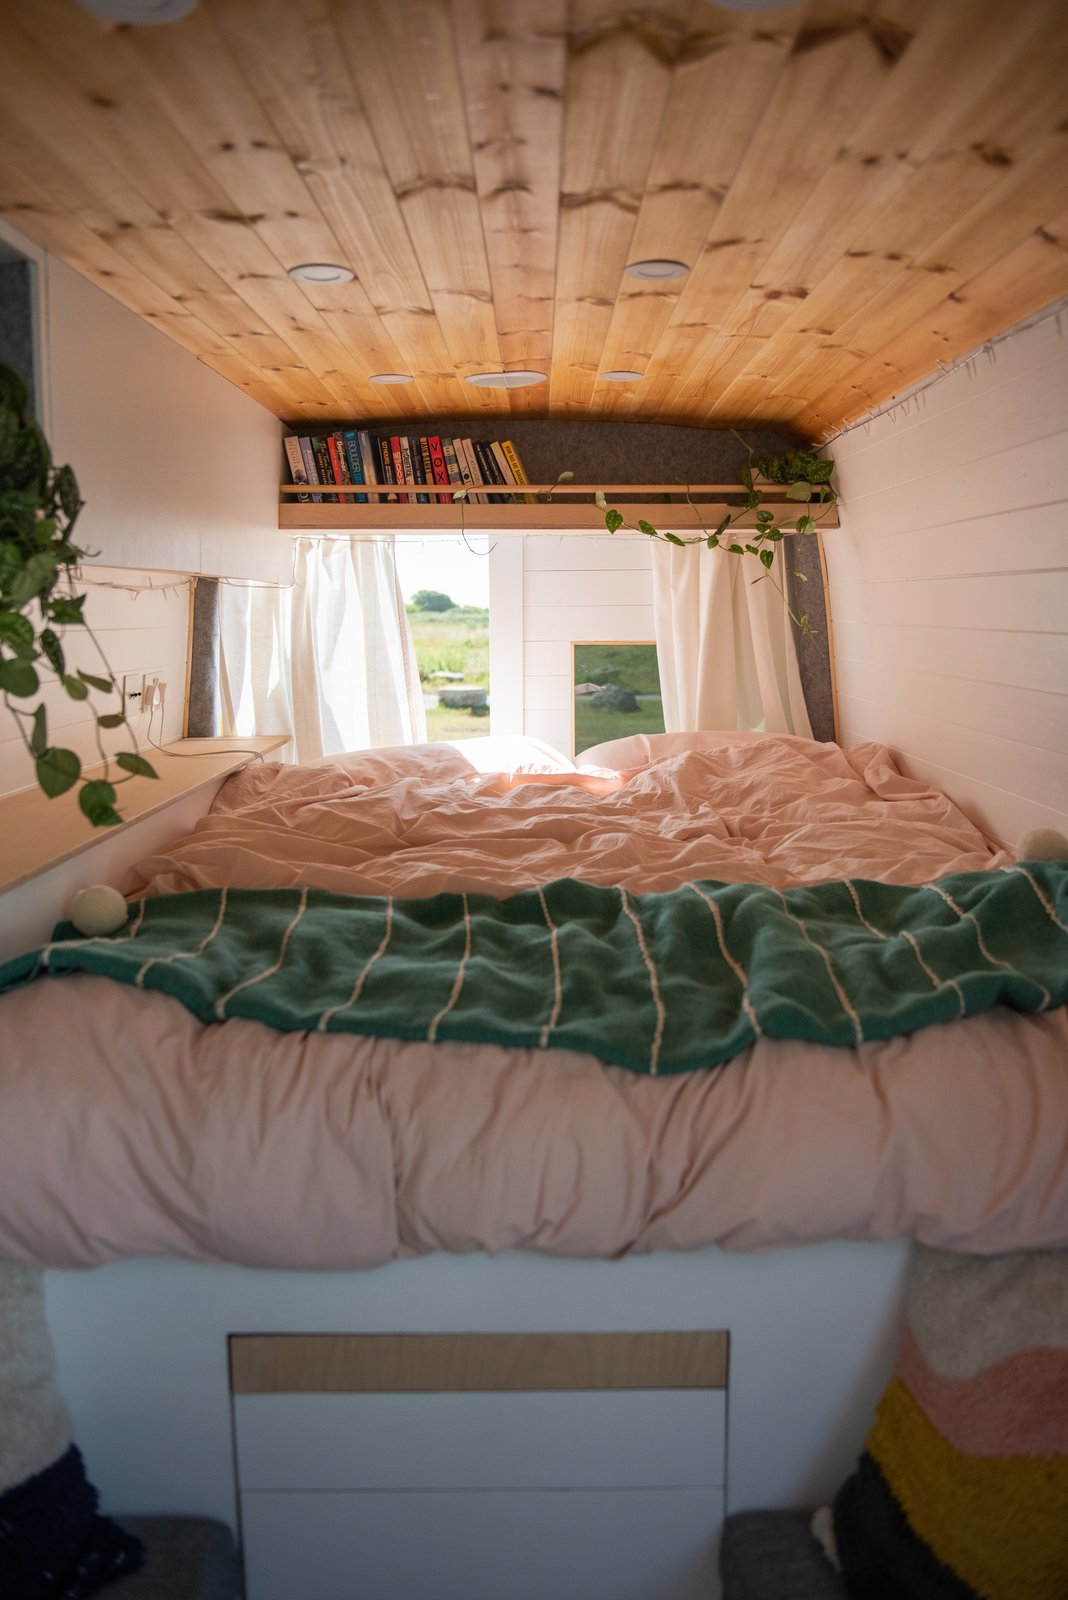 A bookshelf above the bed also holds space for greenery.  Photo 20 of 22 in Budget Breakdown: A Climbing Couple Turn a Delivery Van Into an Adventure Mobile for $8.5K